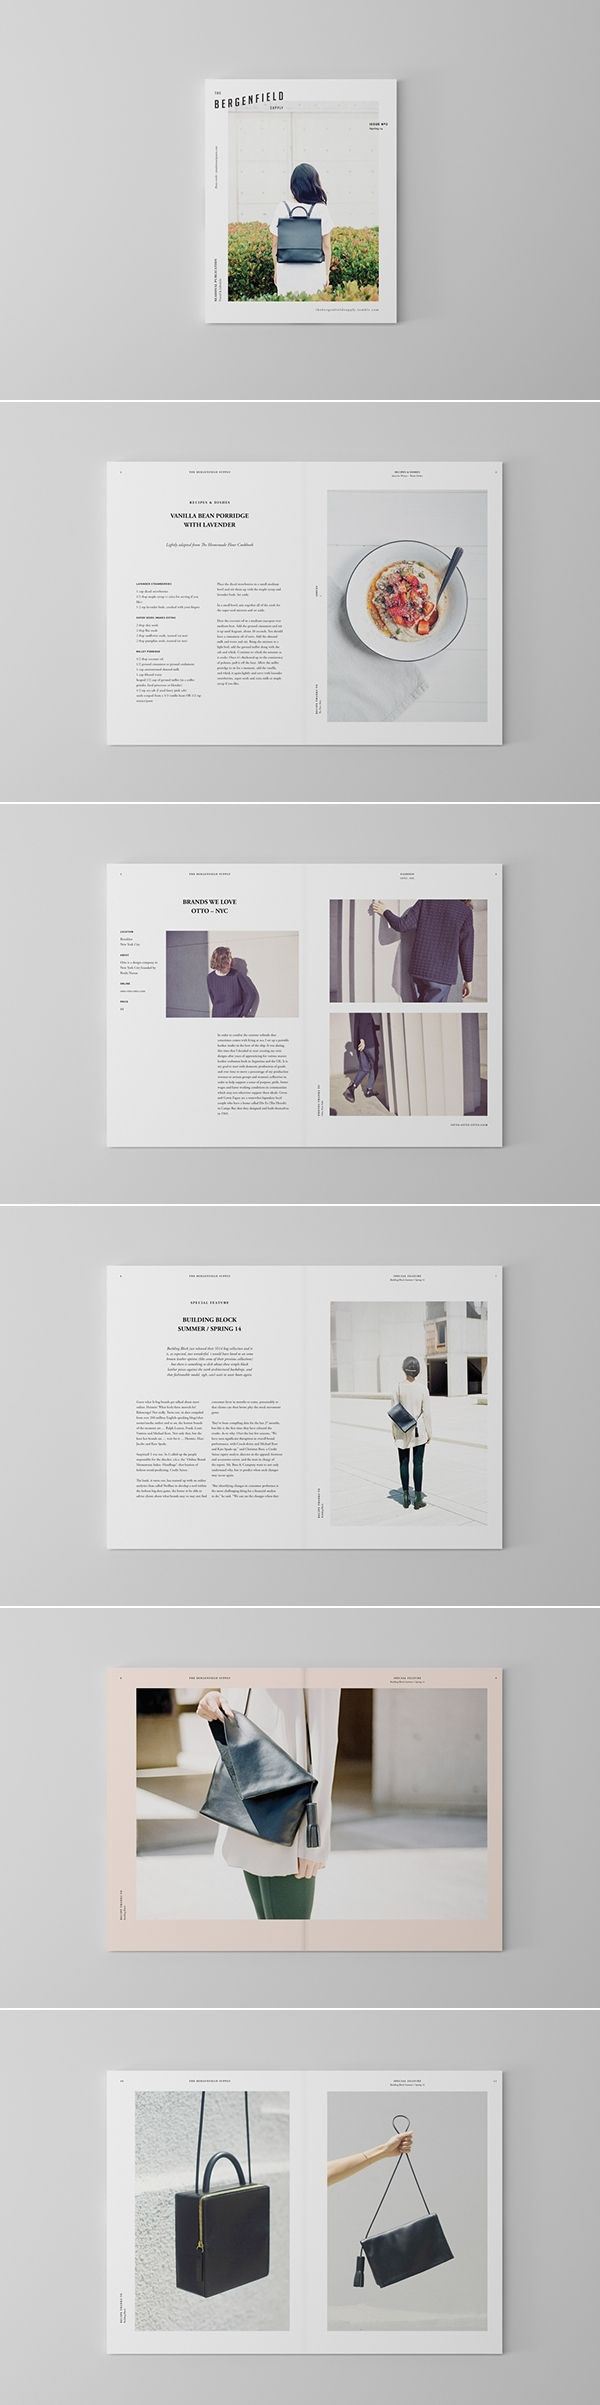 Typography Magazine Design Project My Process On Behance